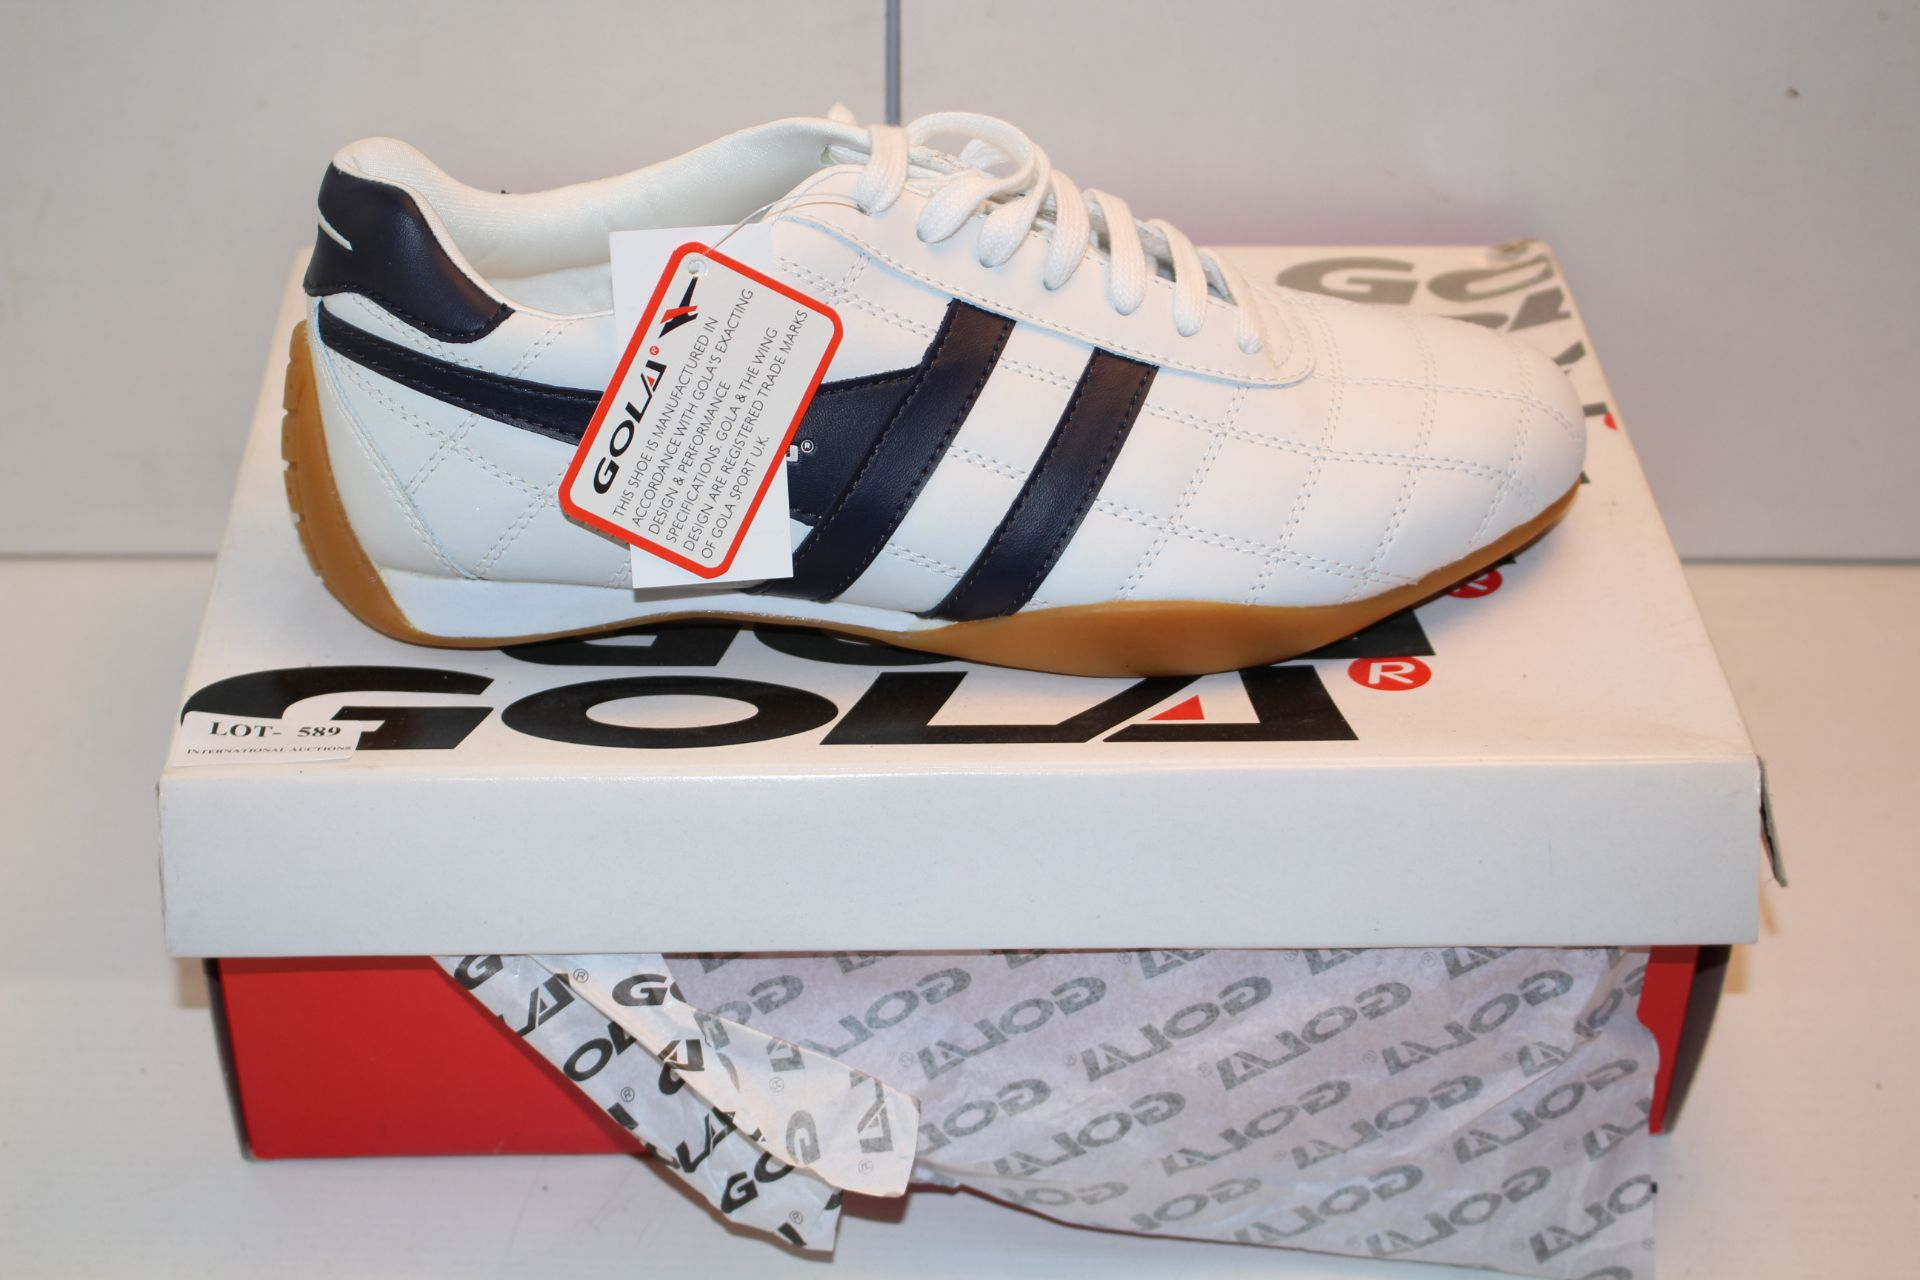 BOXED GOLA TRAINERS, UK SIZE 9, INCLUDES TAGSCondition ReportAppraisal Available on Request- All